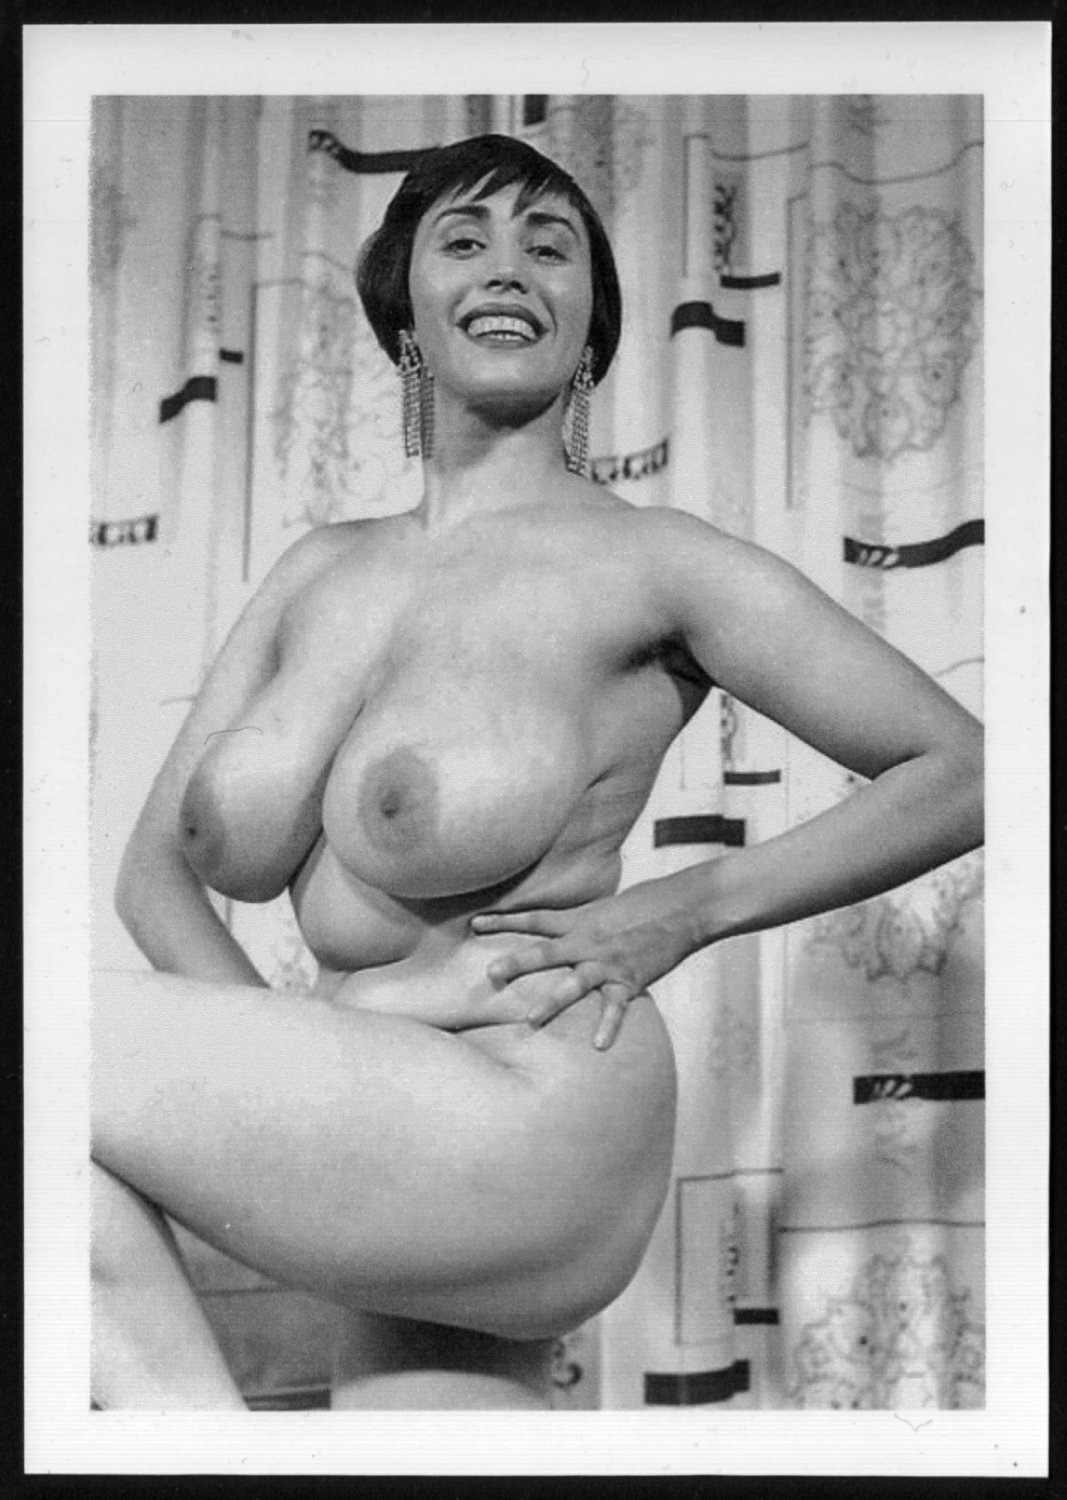 Pam dawber nude, fappening, sexy photos, uncensored